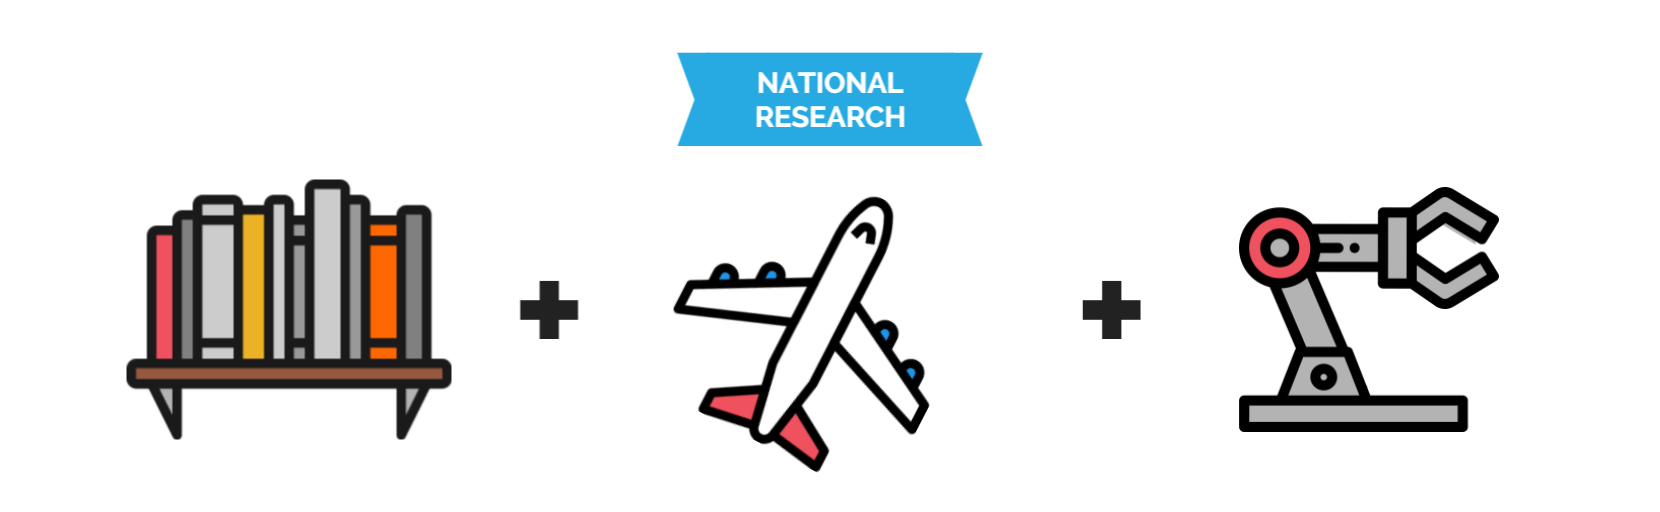 National Research - Internationalisation, Transport, Robotics.png